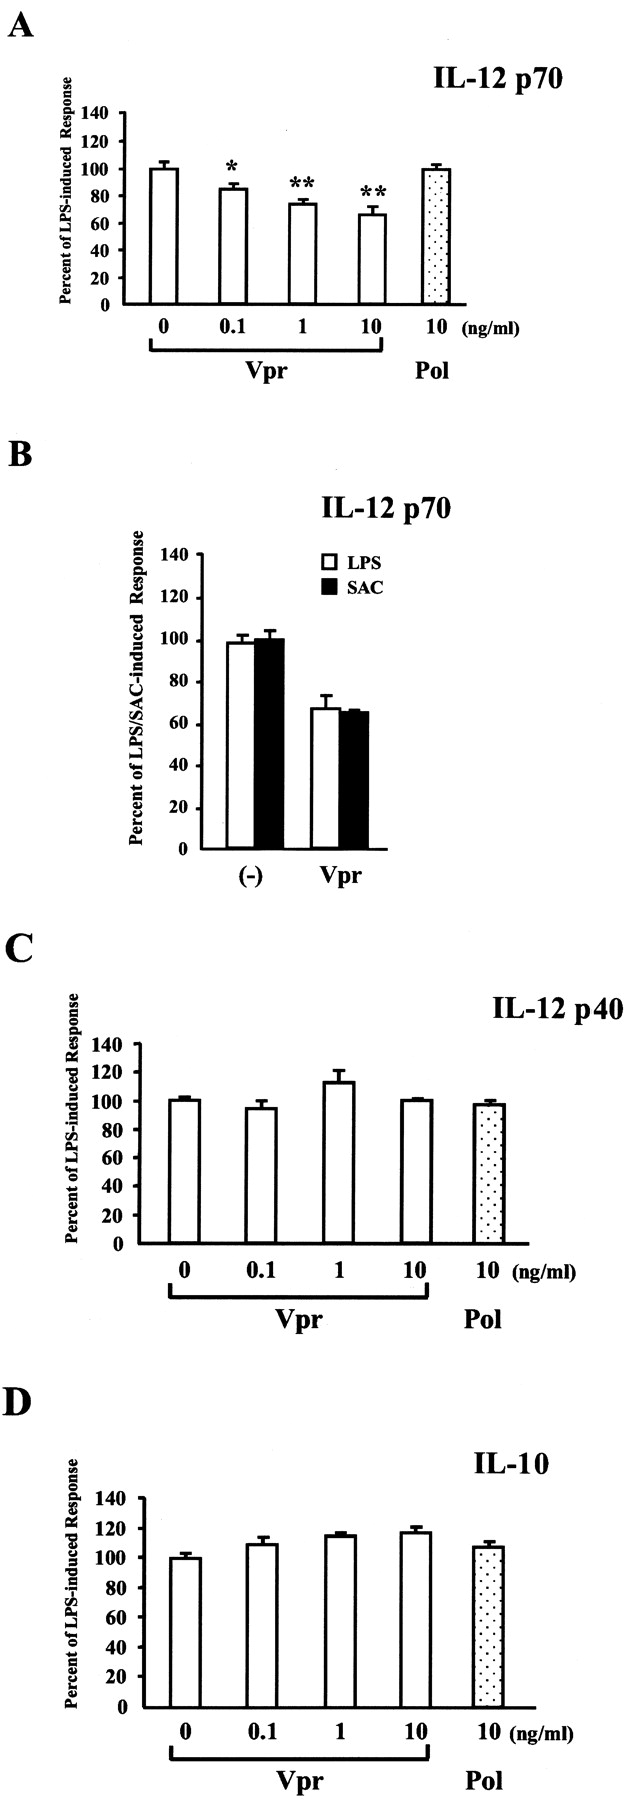 HIV 1 Protein Vpr Suppresses IL 12 Production From Human Monocytes